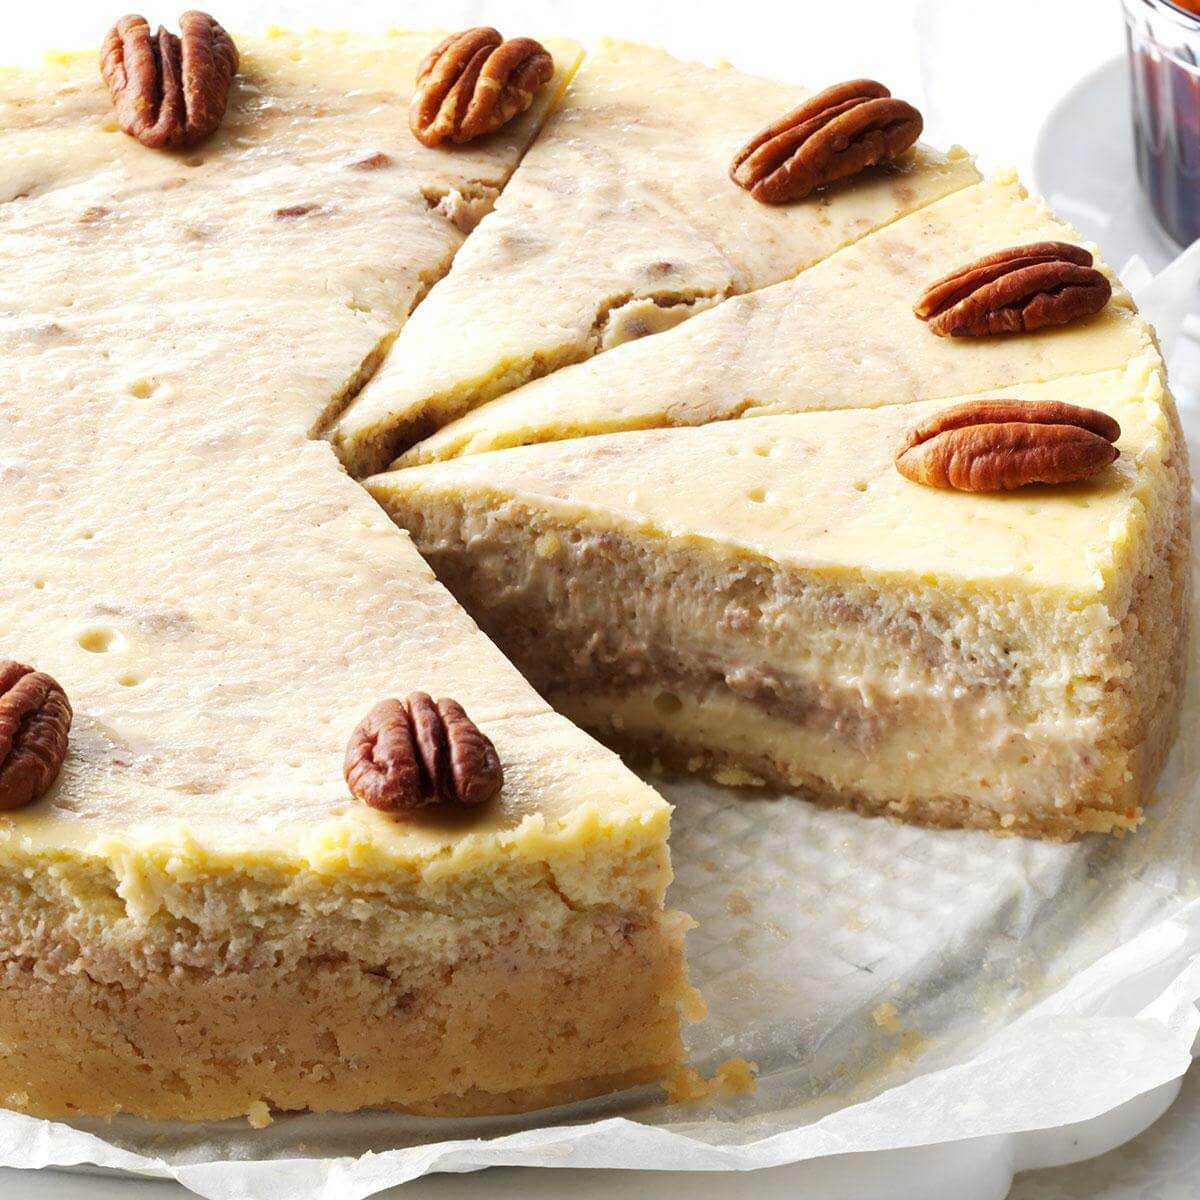 Roasted Banana Amp Pecan Cheesecake Recipe Taste Of Home